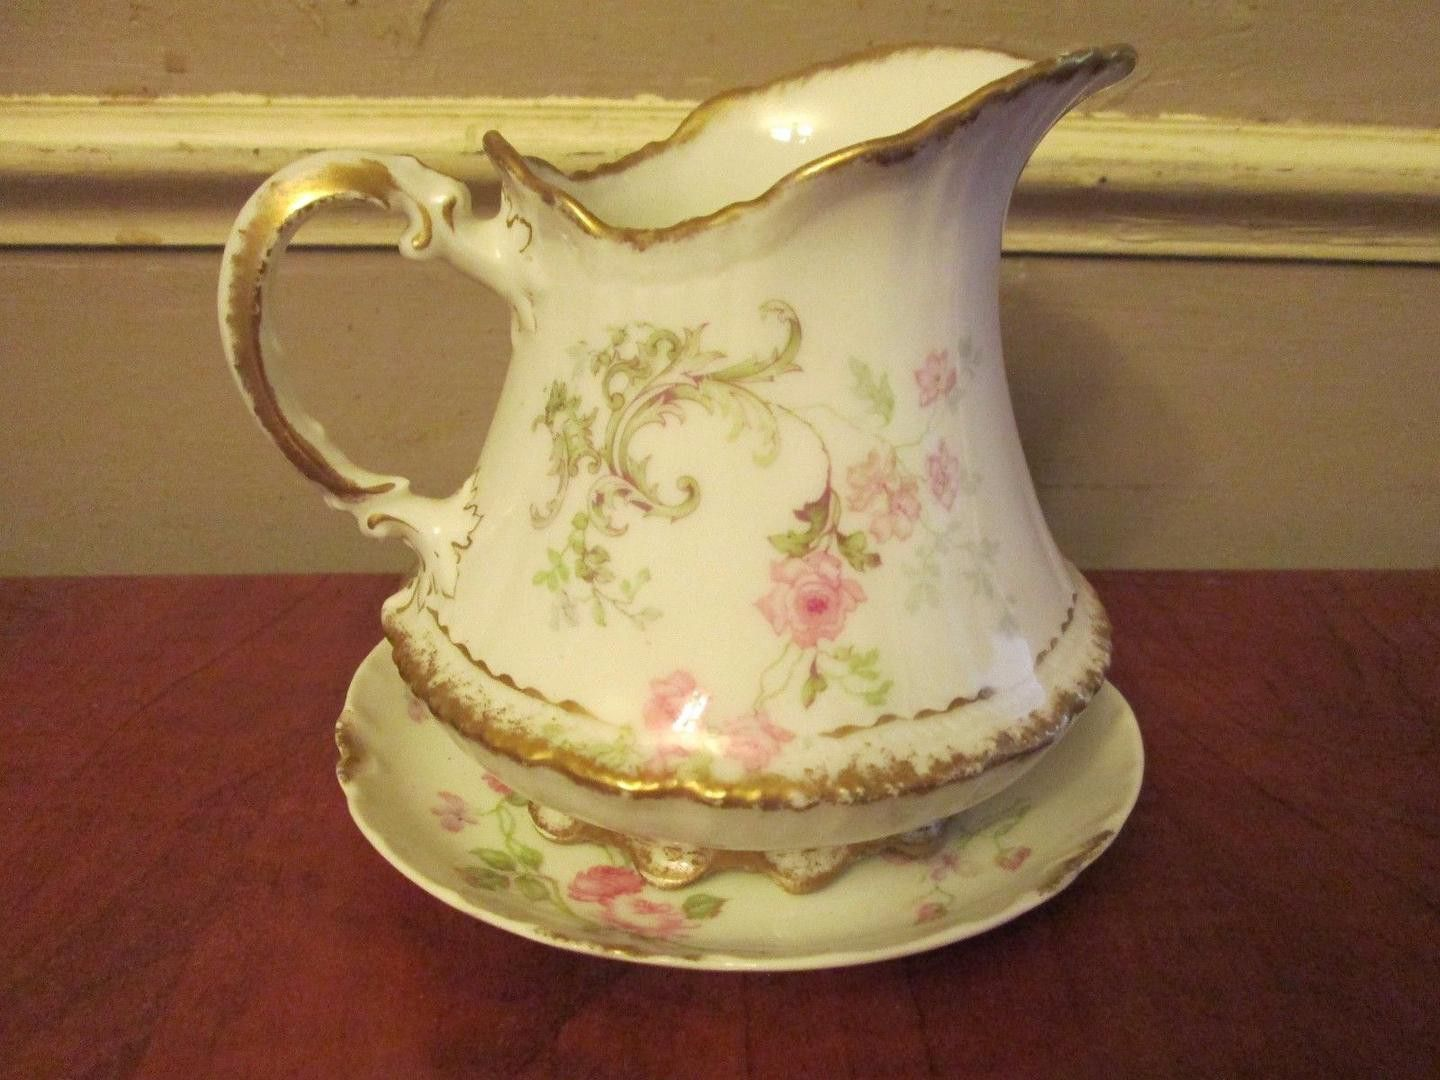 Haviland Limoges Roses Floral Small Pitcher Creamer plate saucer France no chips or cracks. some fading of paint. * VINTAGE AND/OR PREOWNED ITEMS ARE USED AND WILL GENERALLY SHOW SIGNS OR NOR